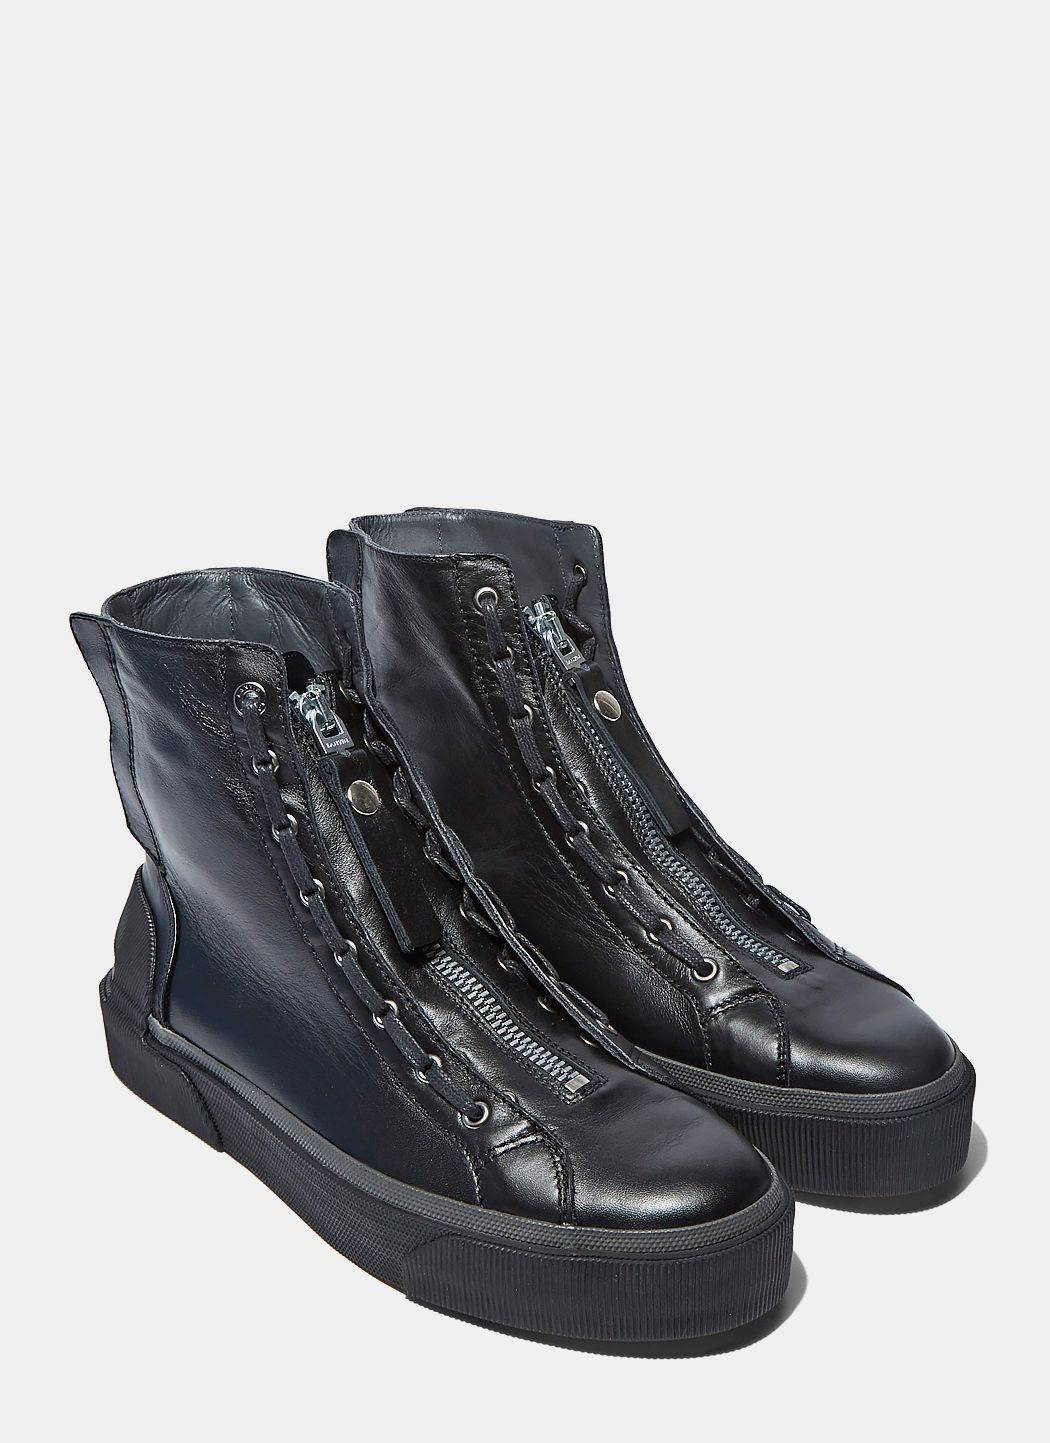 wide range of online Lanvin Lace-Up High-Top Sneakers sale clearance outlet find great free shipping for nice discount professional BVAGQe6Ur